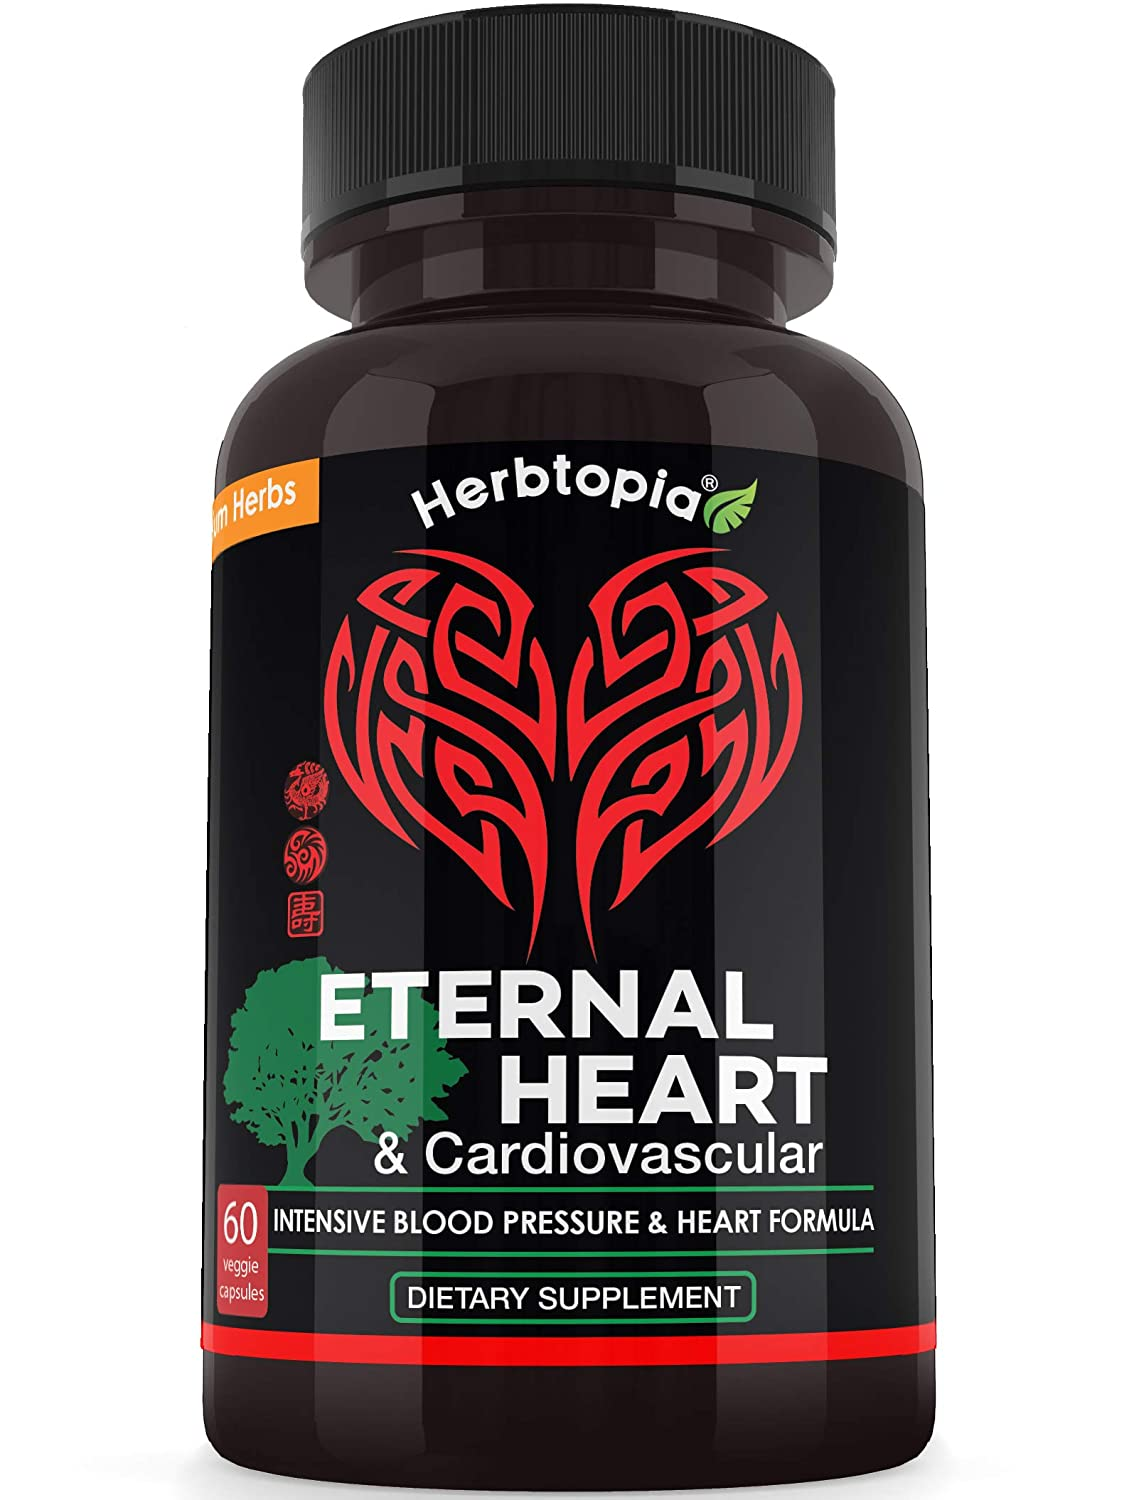 Eternal Heart High Blood Pressure Supplement – Extra Strength Formula to Lower BP Naturally, Boost Blood Flow, Cholesterol Lowering w CoQ10, Vitamin K2 MK7, Dan-Shen, Hawthorn, Olive Leaf